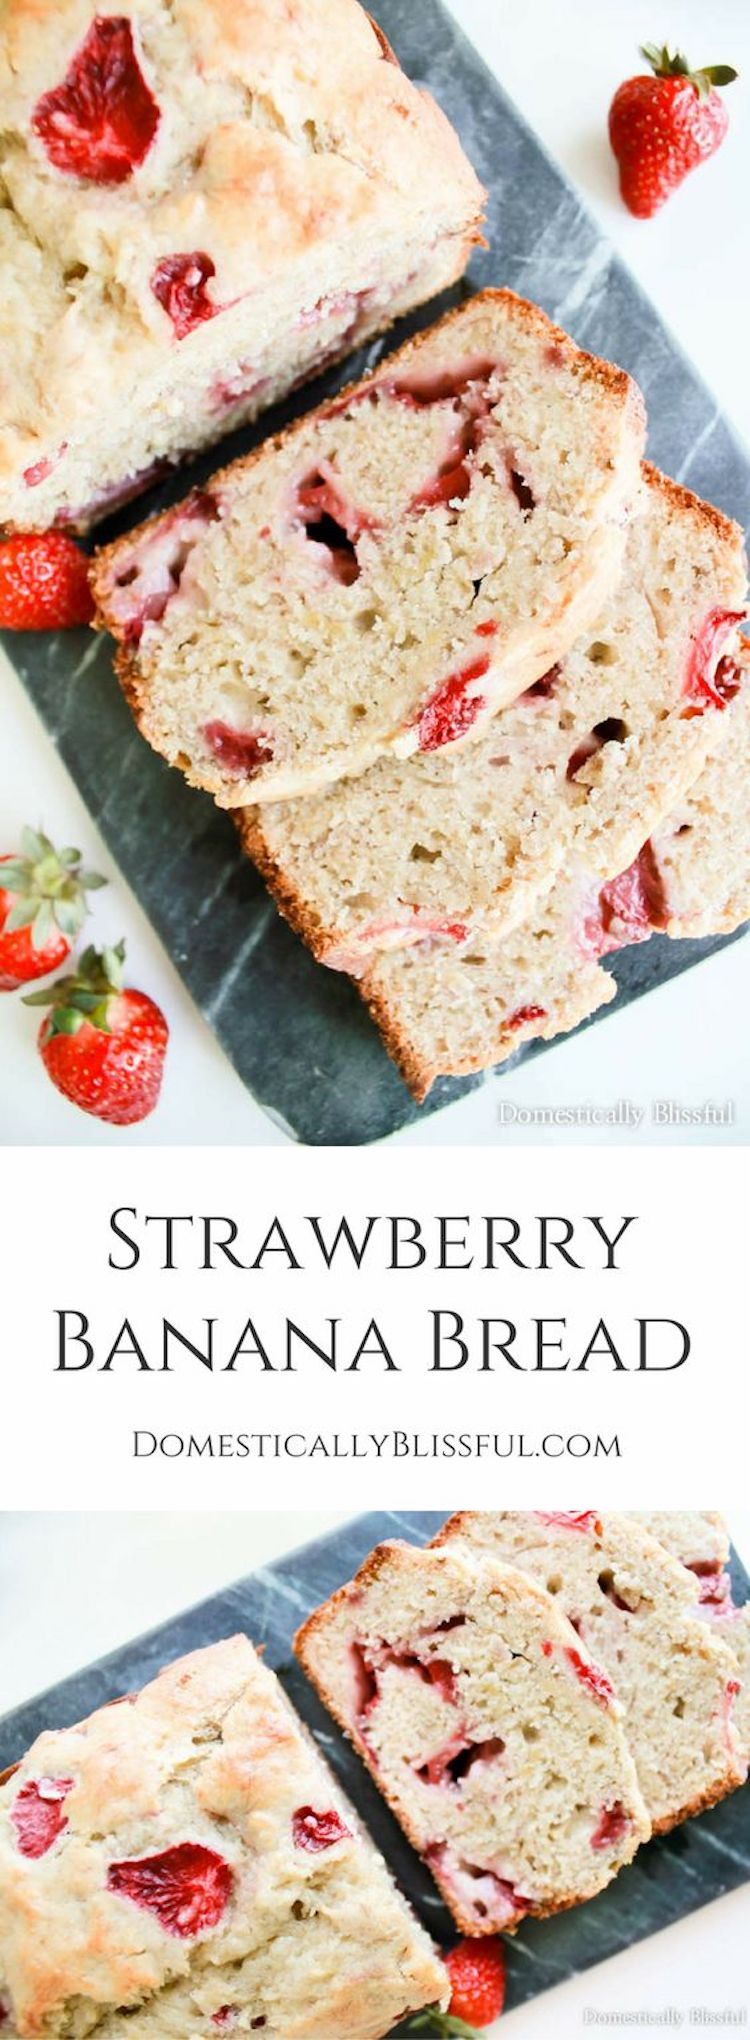 Banana Bread Recipe 01